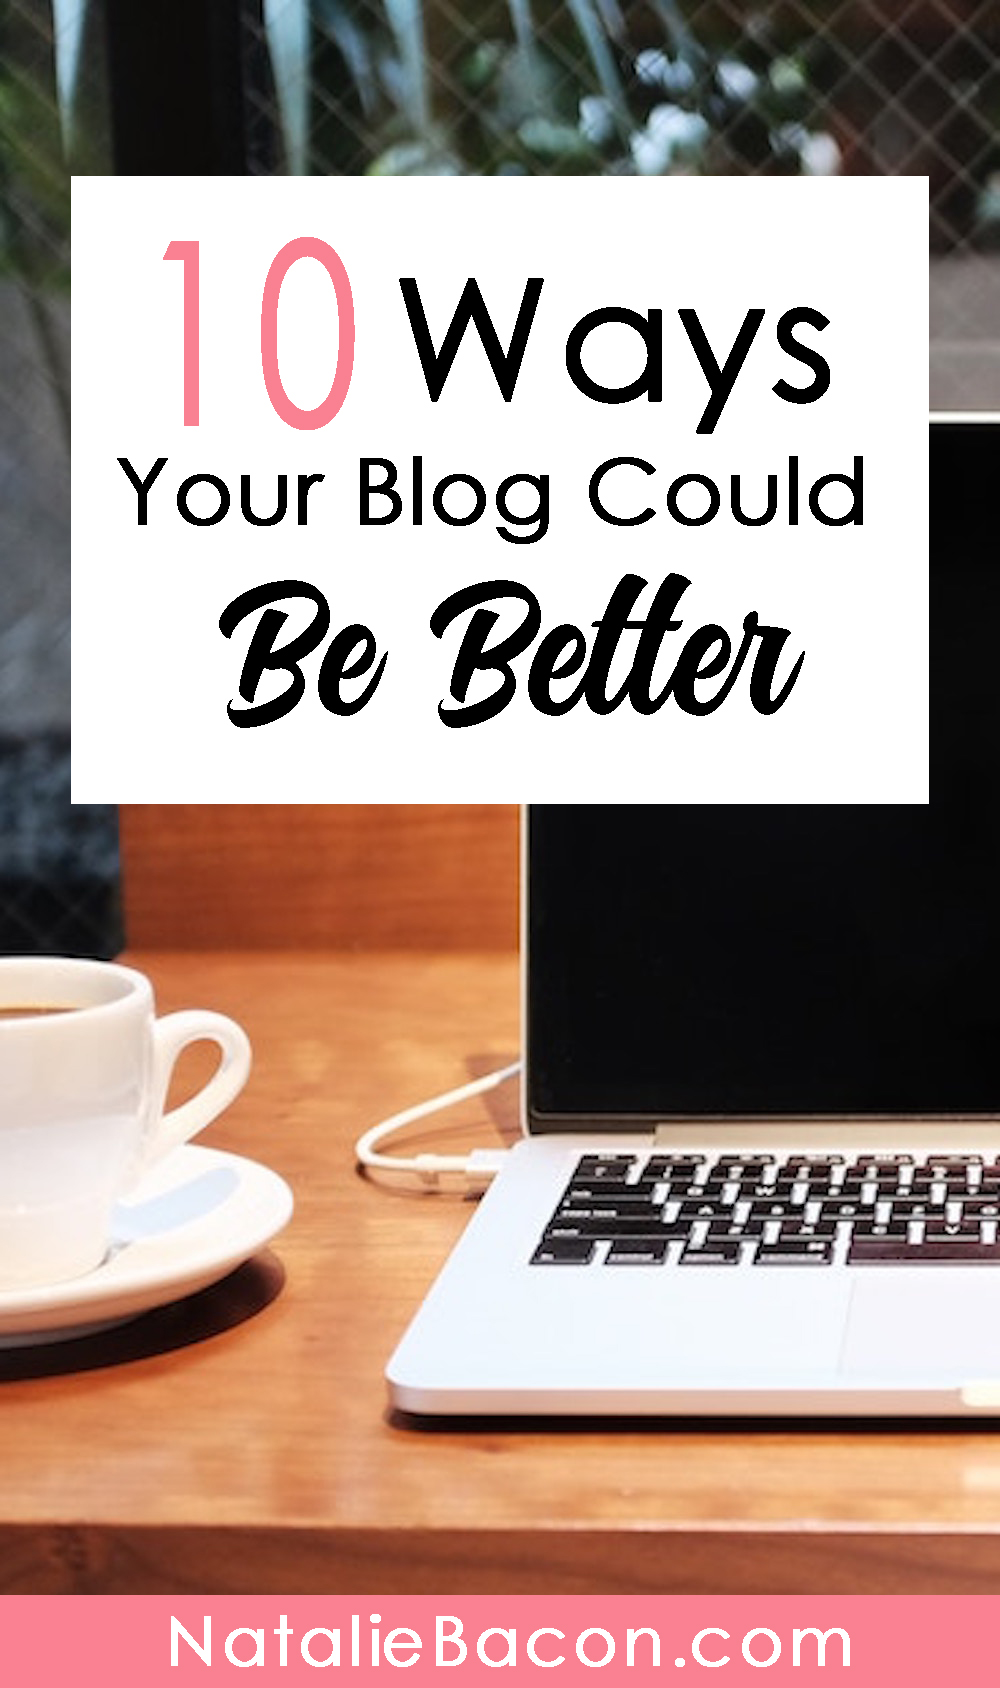 10 Ways To Improve Your Blog Right Now